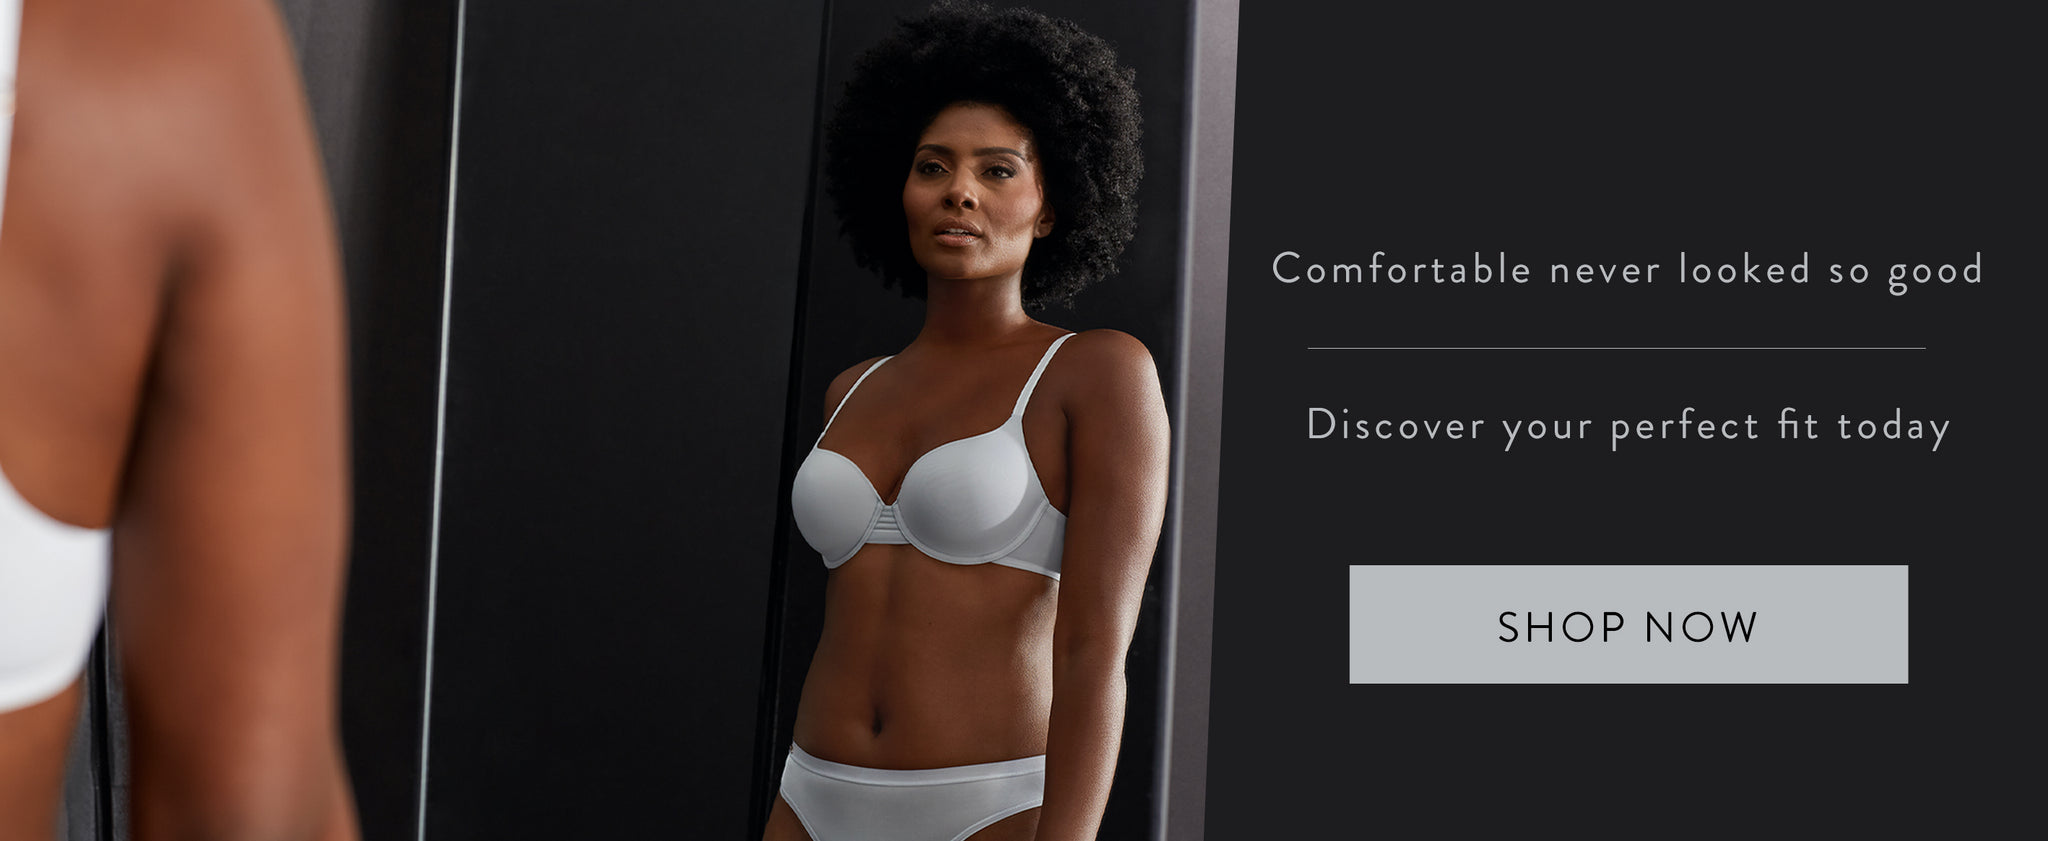 Le Mystere Homepage - Comfortable never looked so good.  Discover your perfect fit today.  Shop now.